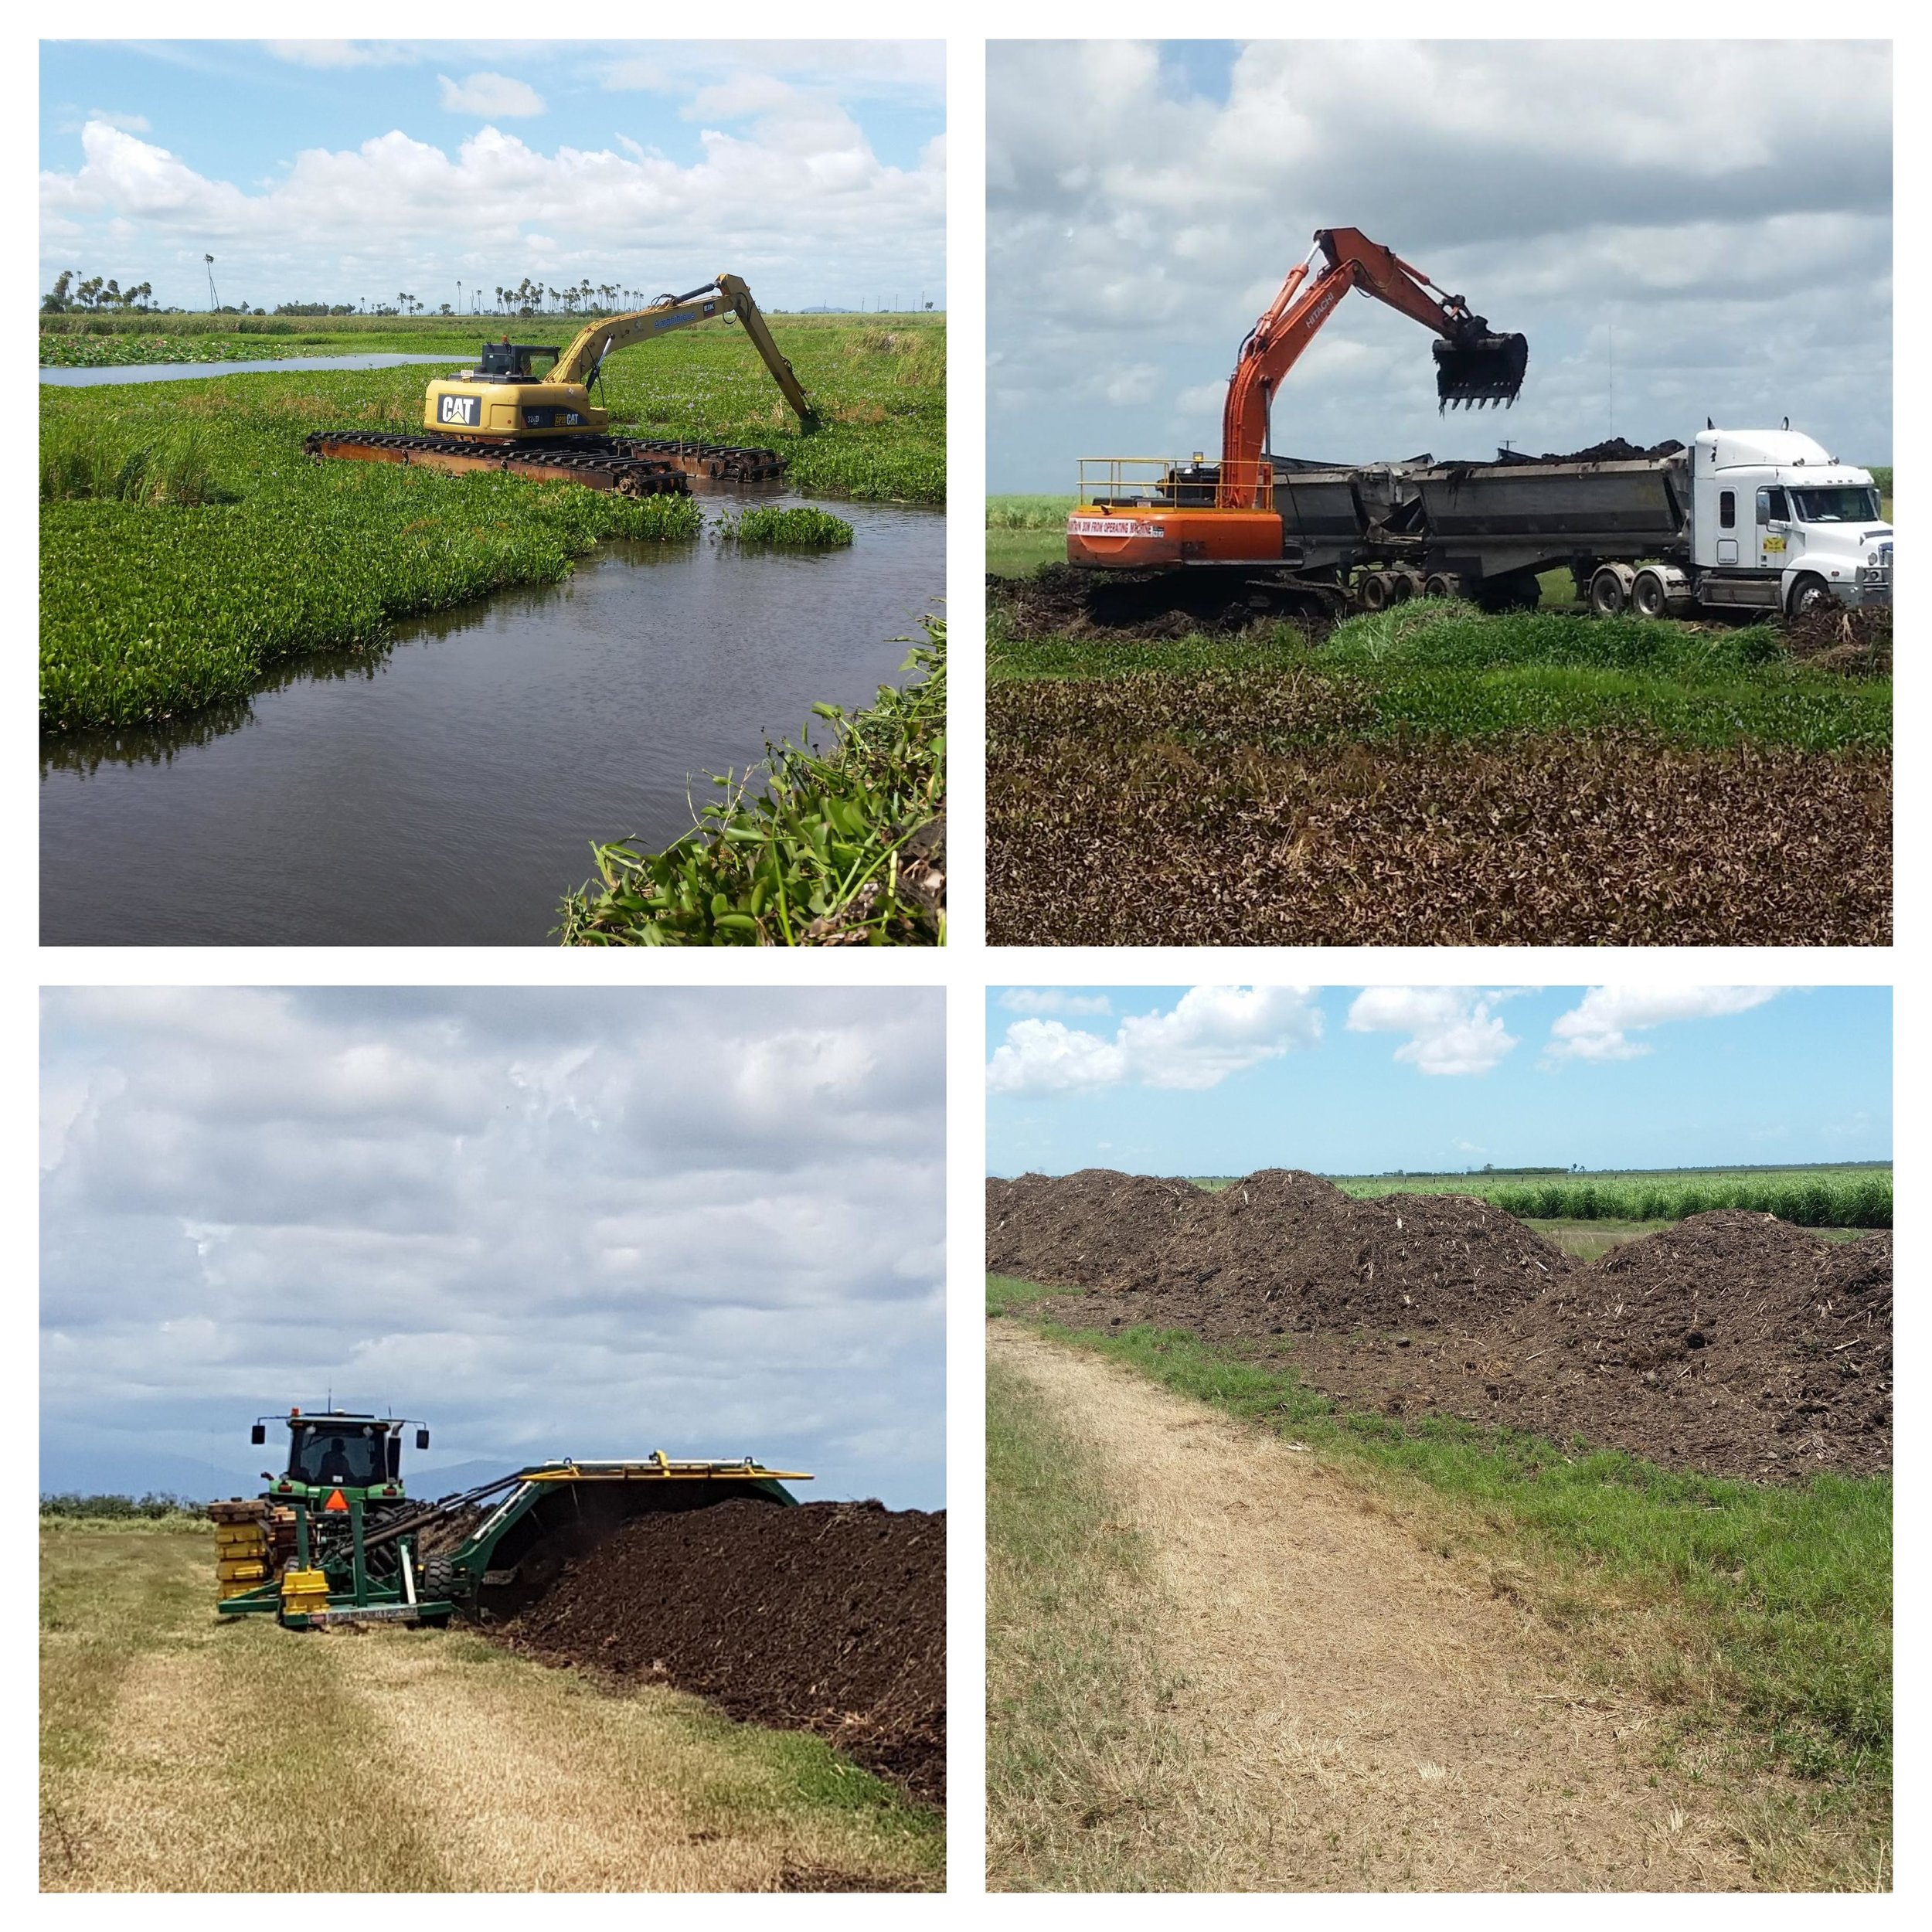 Stages of the aquatic weed removal process.